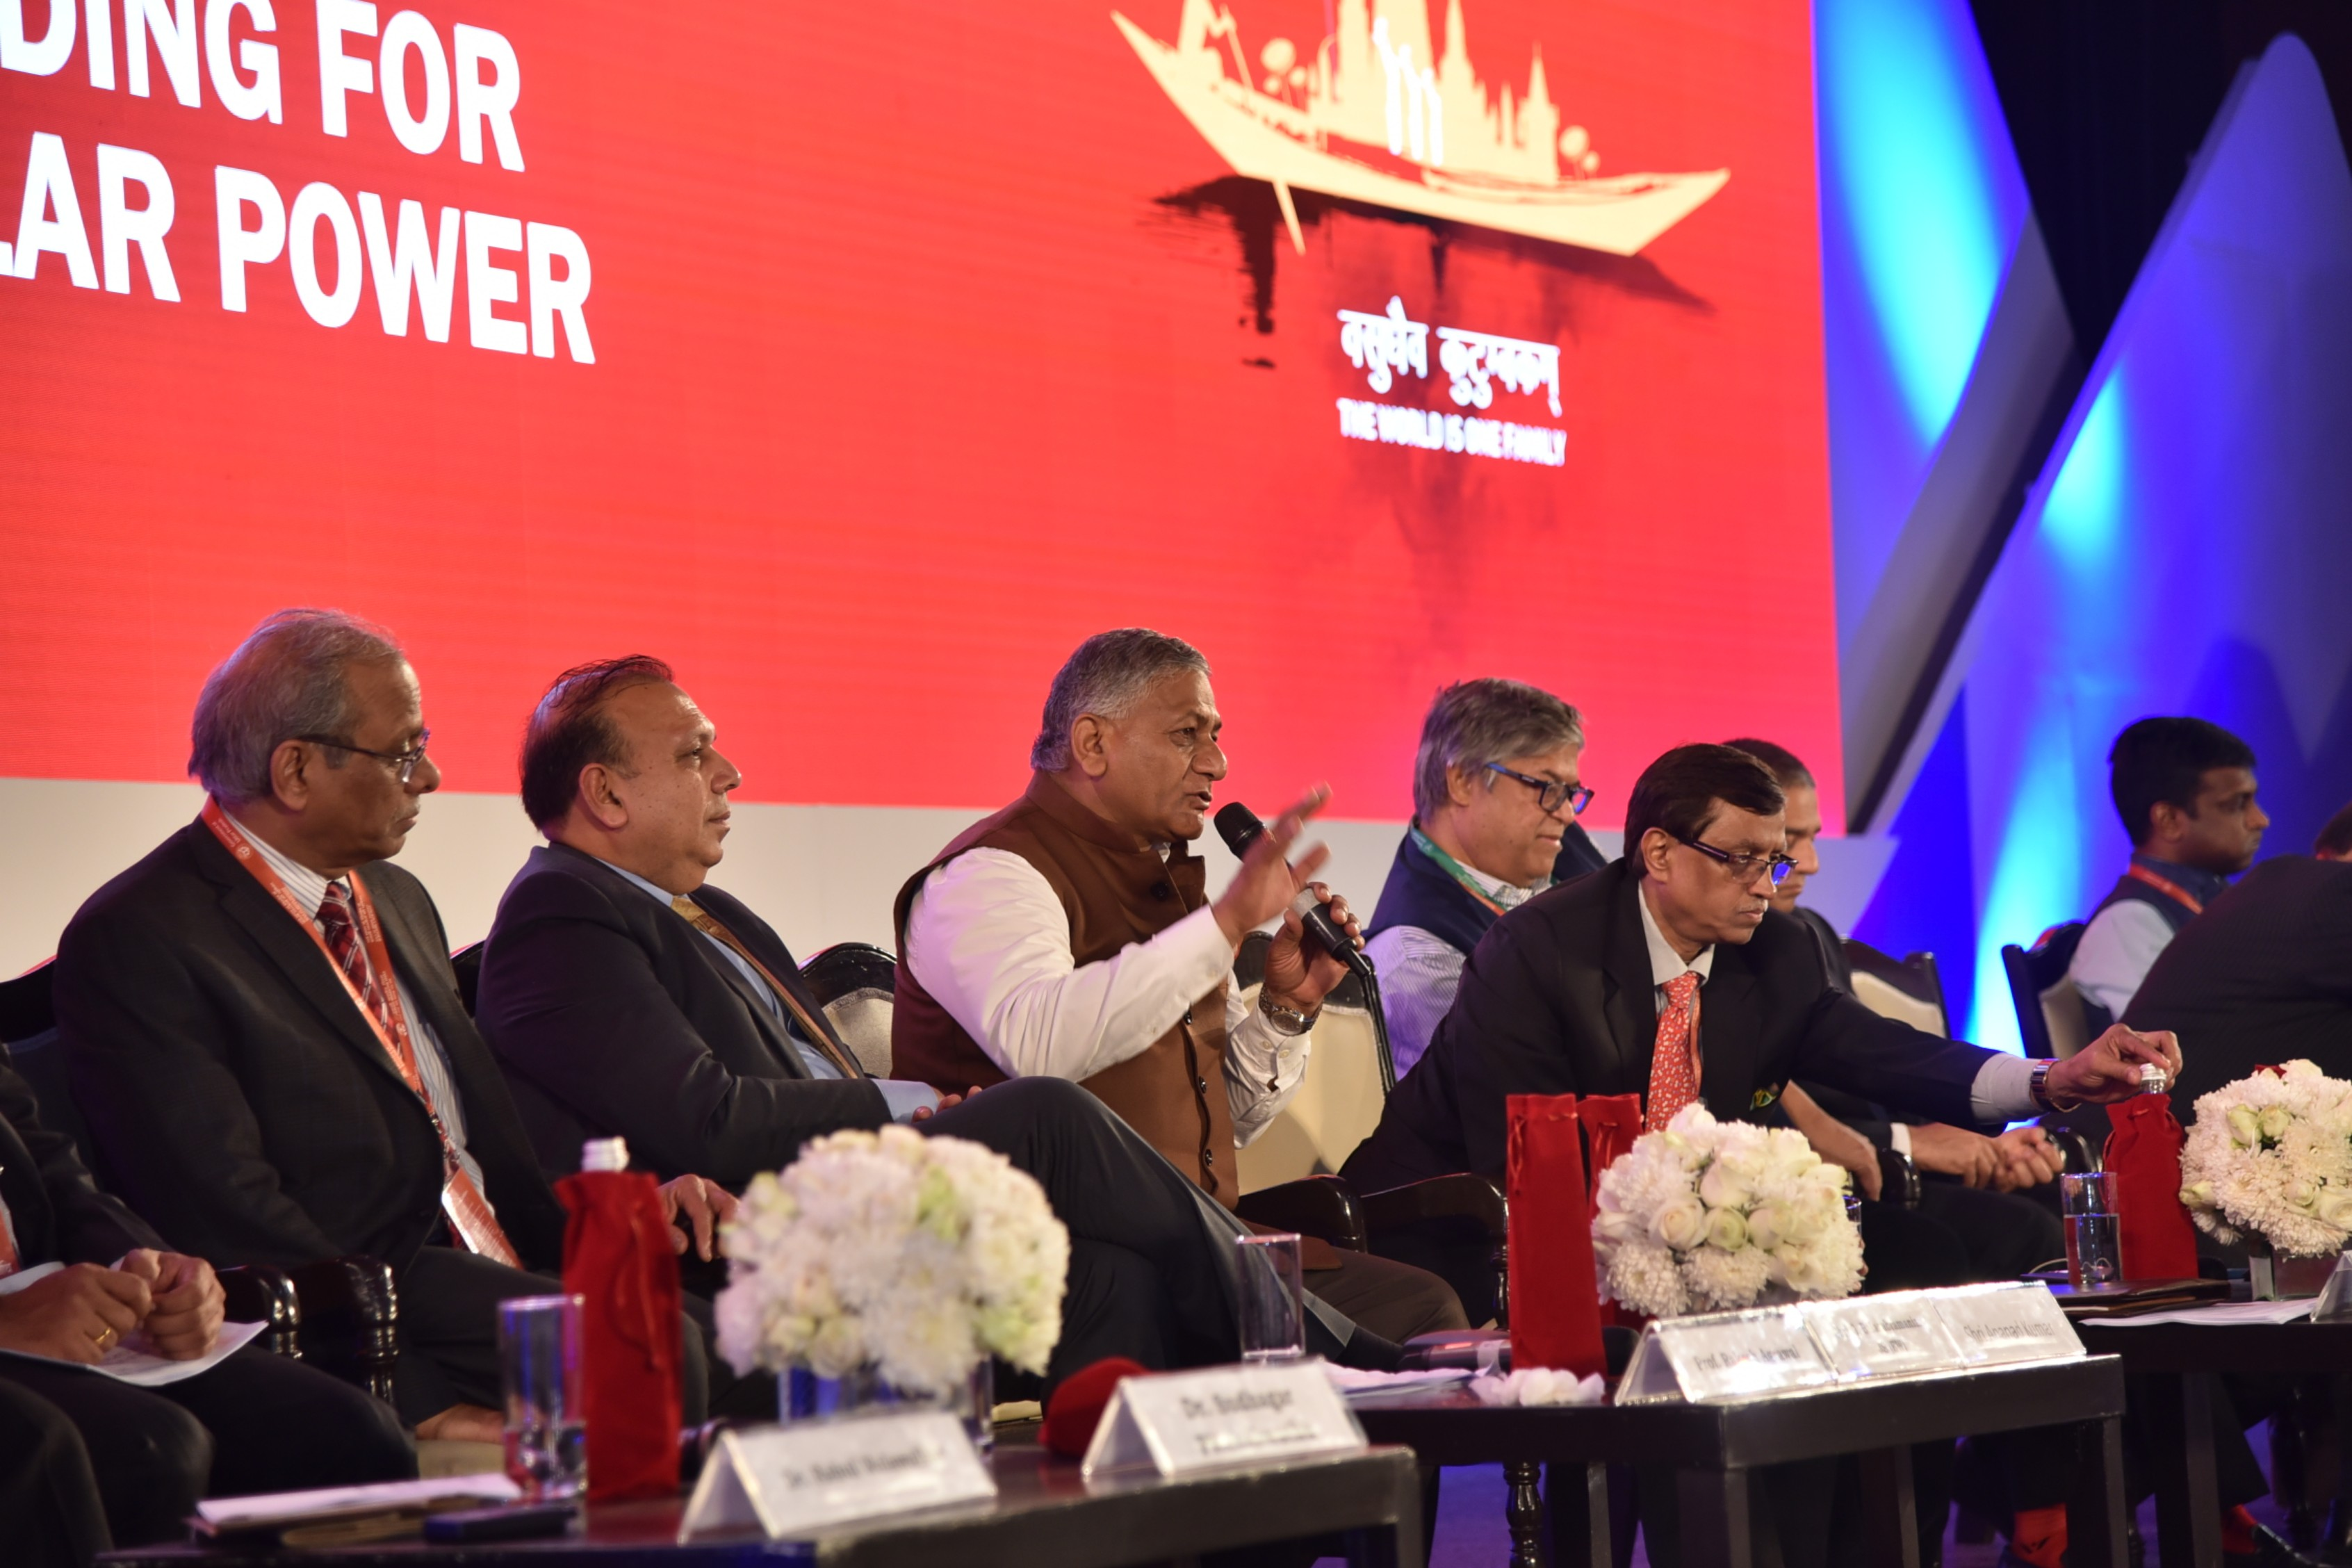 Plenary Session-ii- Role of India diaspora in capacity building for affordable solar power takes place in Varanasi,UP January-22-2019